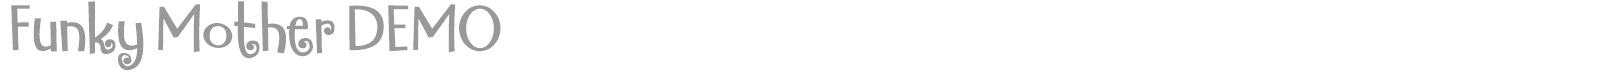 Font Funky Mother